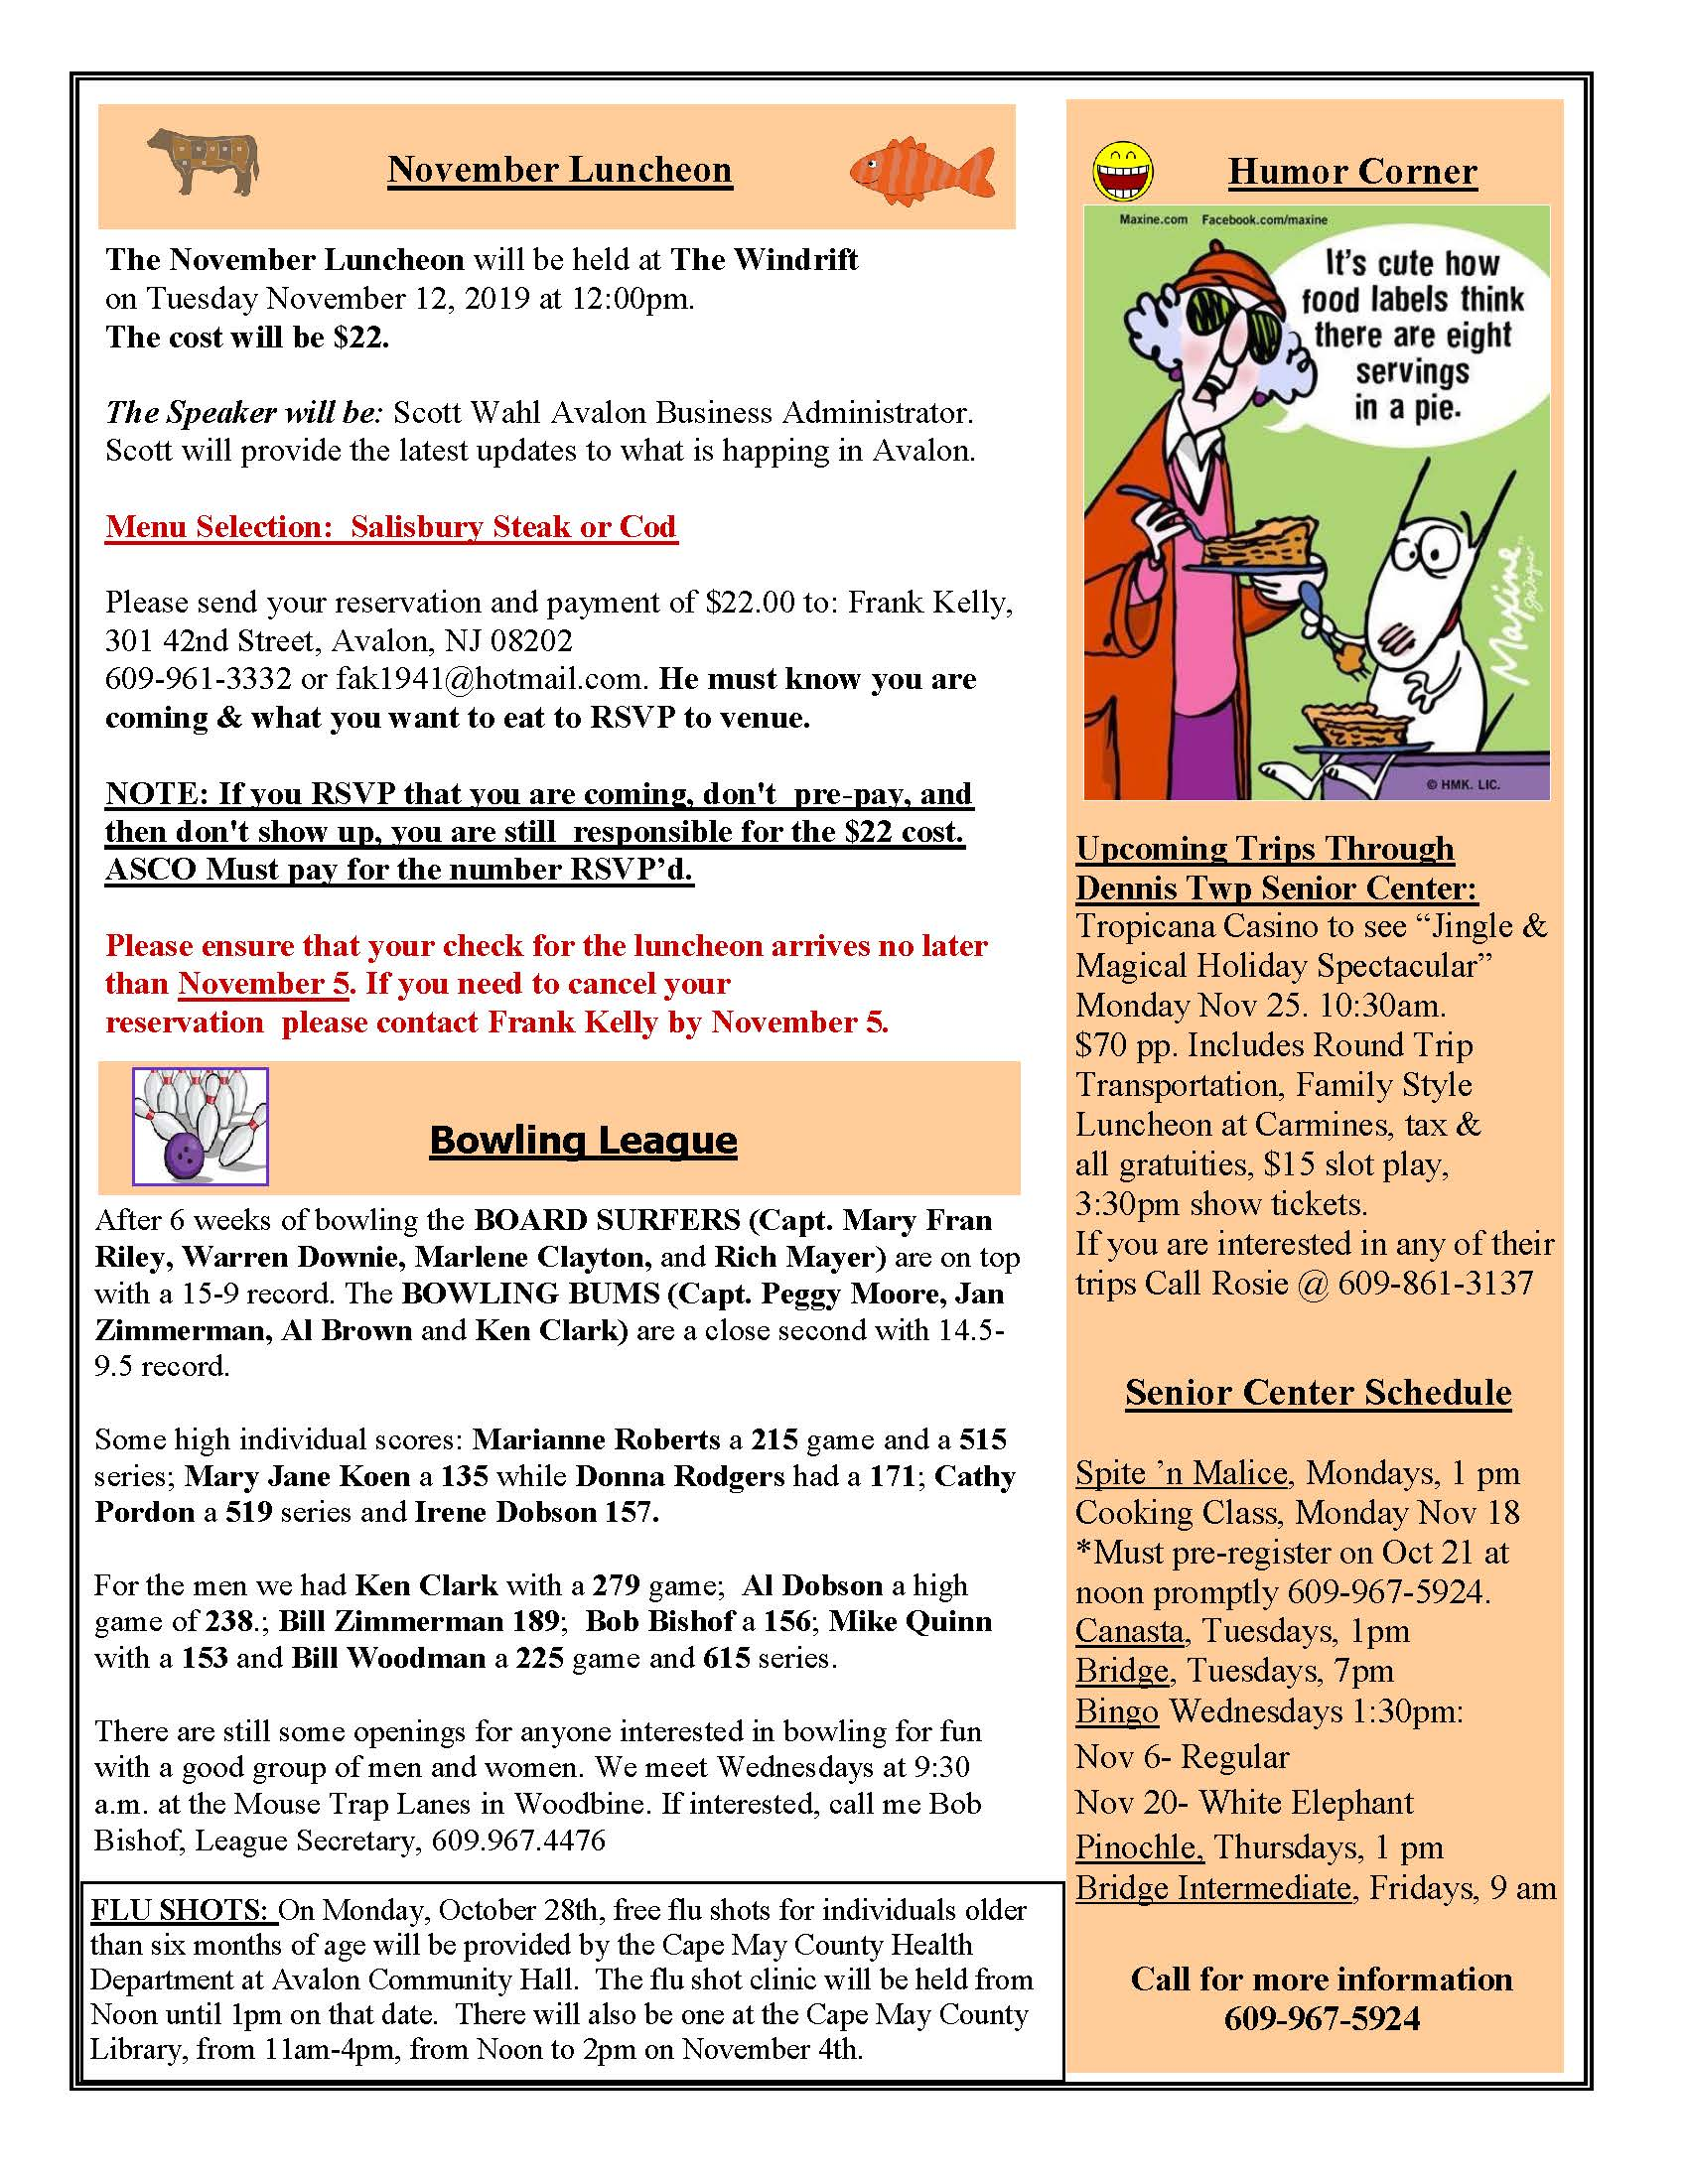 Two page ASCO newsletter